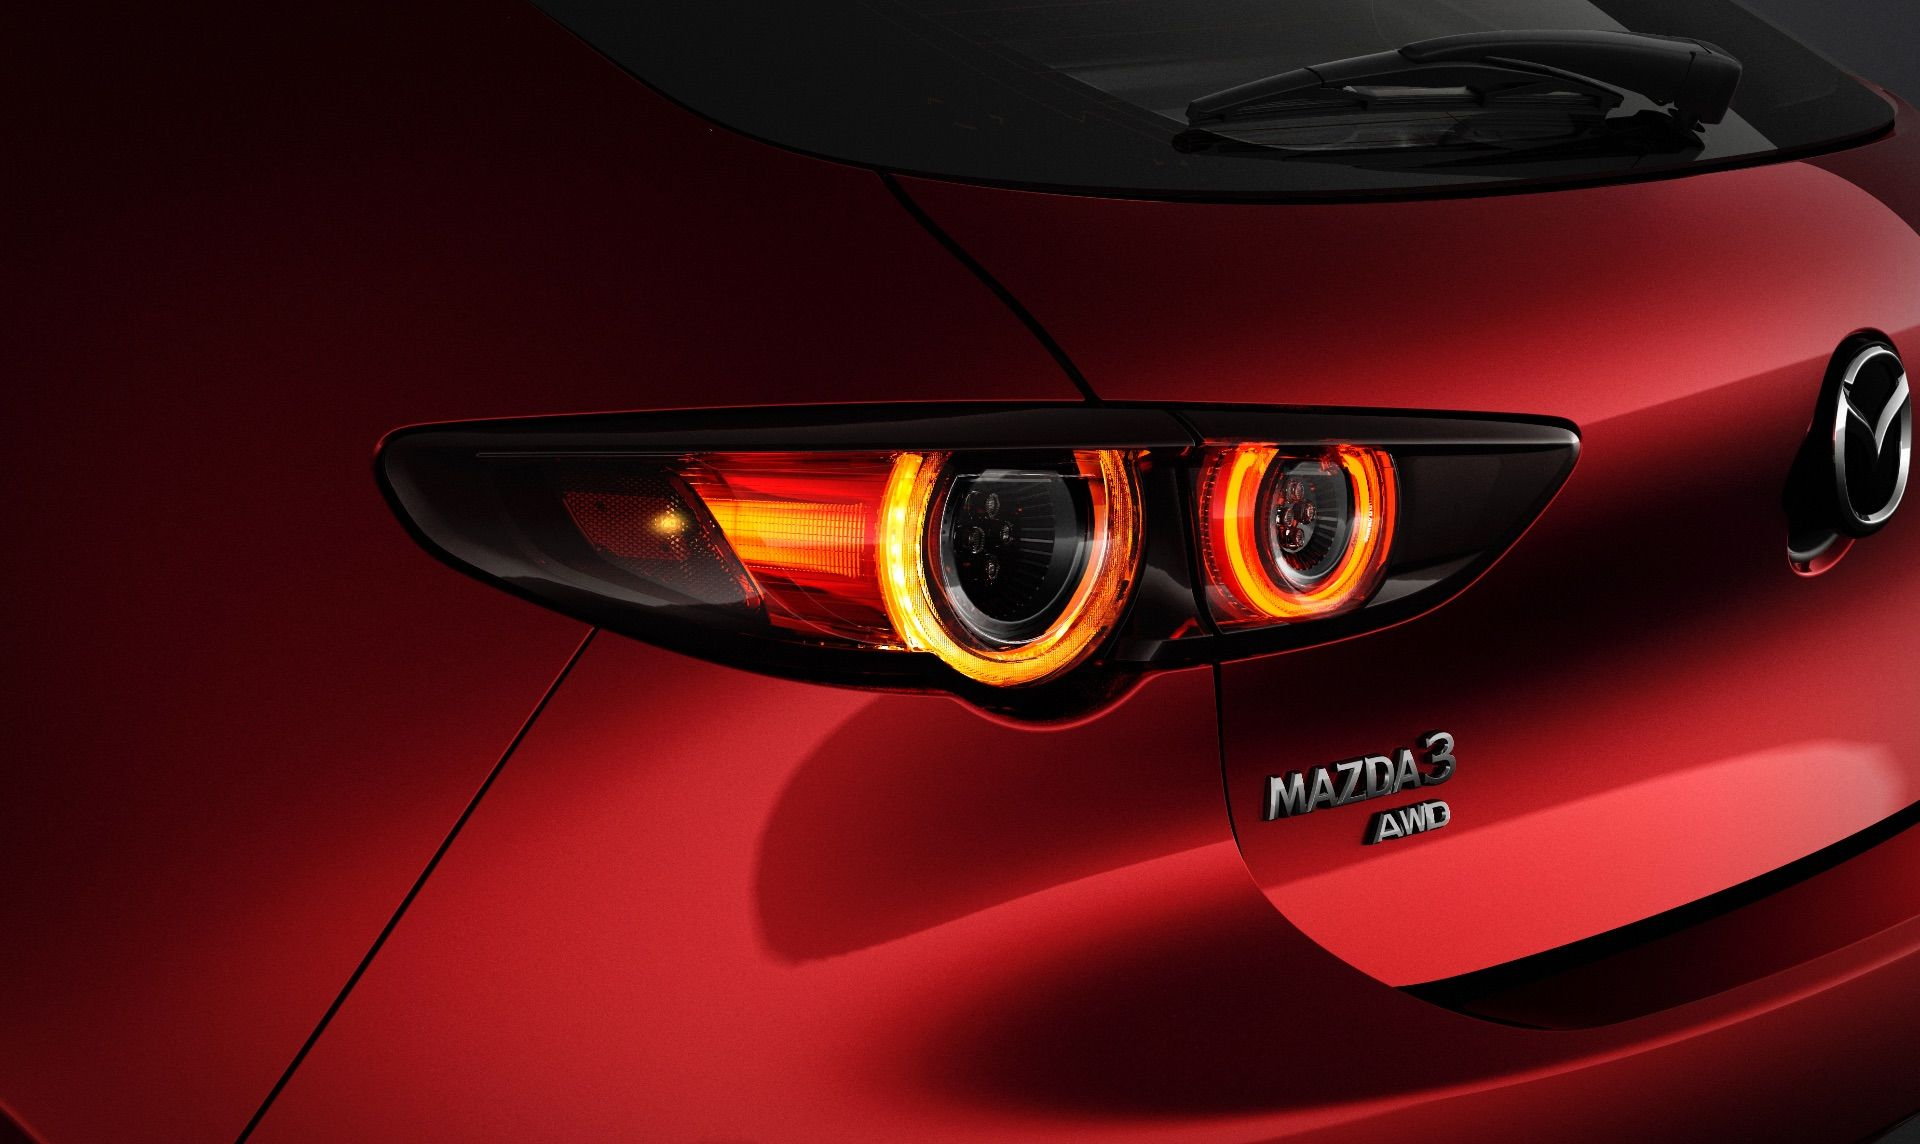 All 5 Cool Facts About The New 2019 Mazda 3's i-ACTIV All-Wheel Drive, With Lori Currie